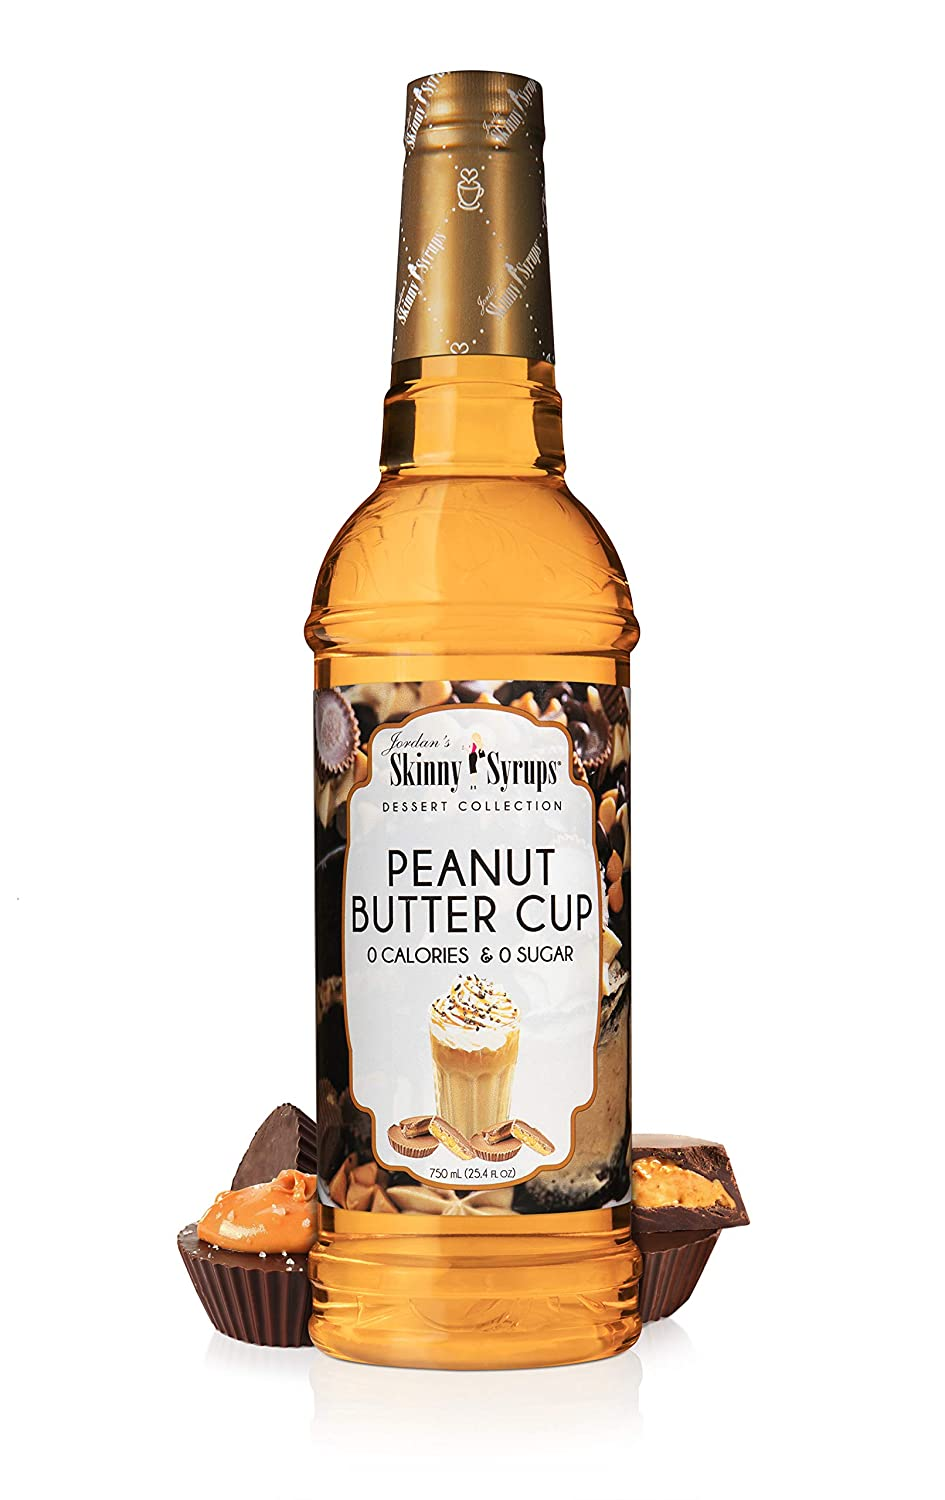 Jordan's Skinny Syrups, Sugar Free Peaunt Butter Cup Syrup, Healthy Flavors with 0 Calories, 0 Sugar, 0 Carbs, 25.4 Fl Oz Bottle